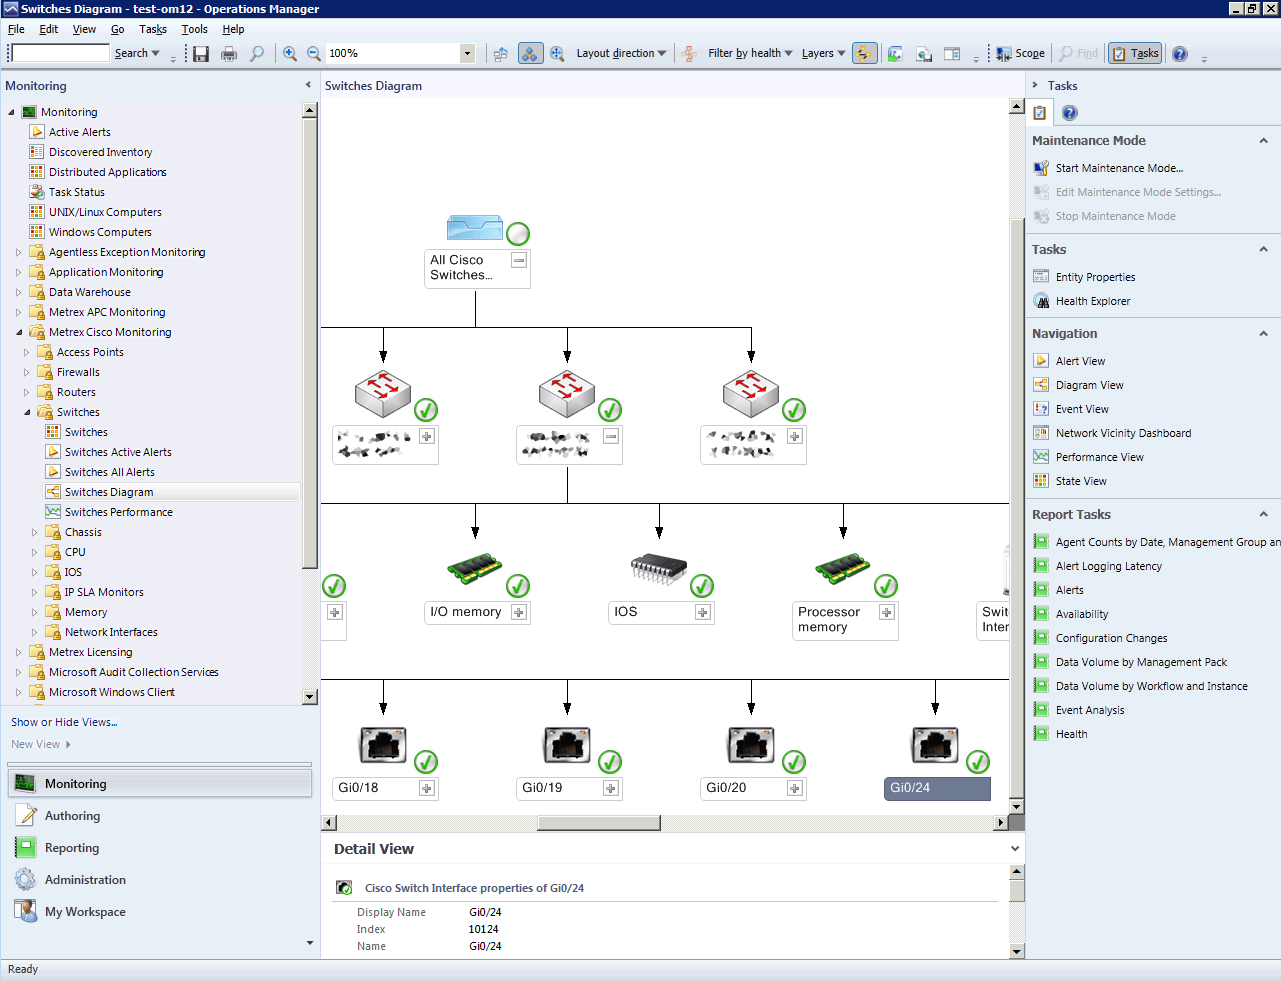 sccm deployment diagram wiring for trailer 2012 architecture free engine image